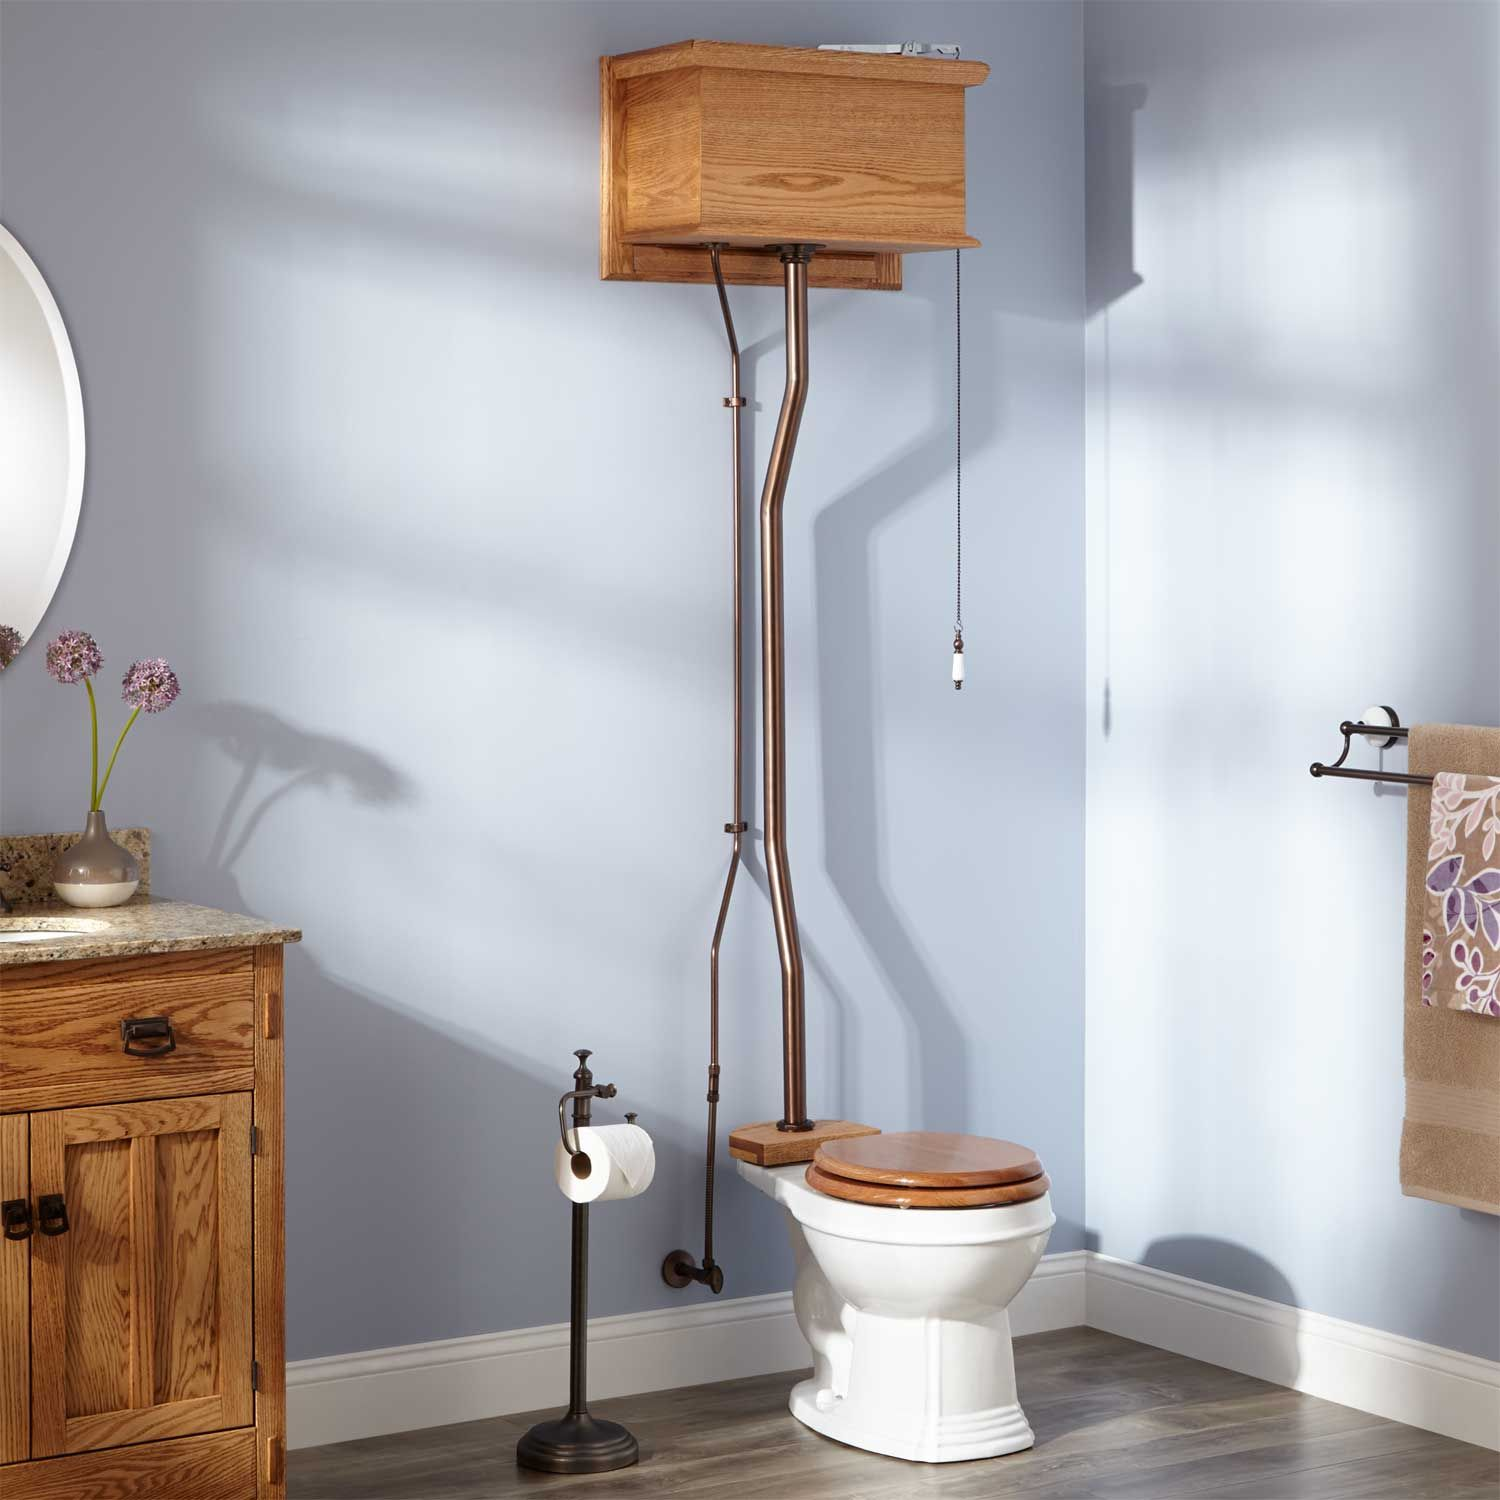 High Tank Pull Chain Toilet Golden Oak High Tank Pull Chain Water Closet With Round Victorian